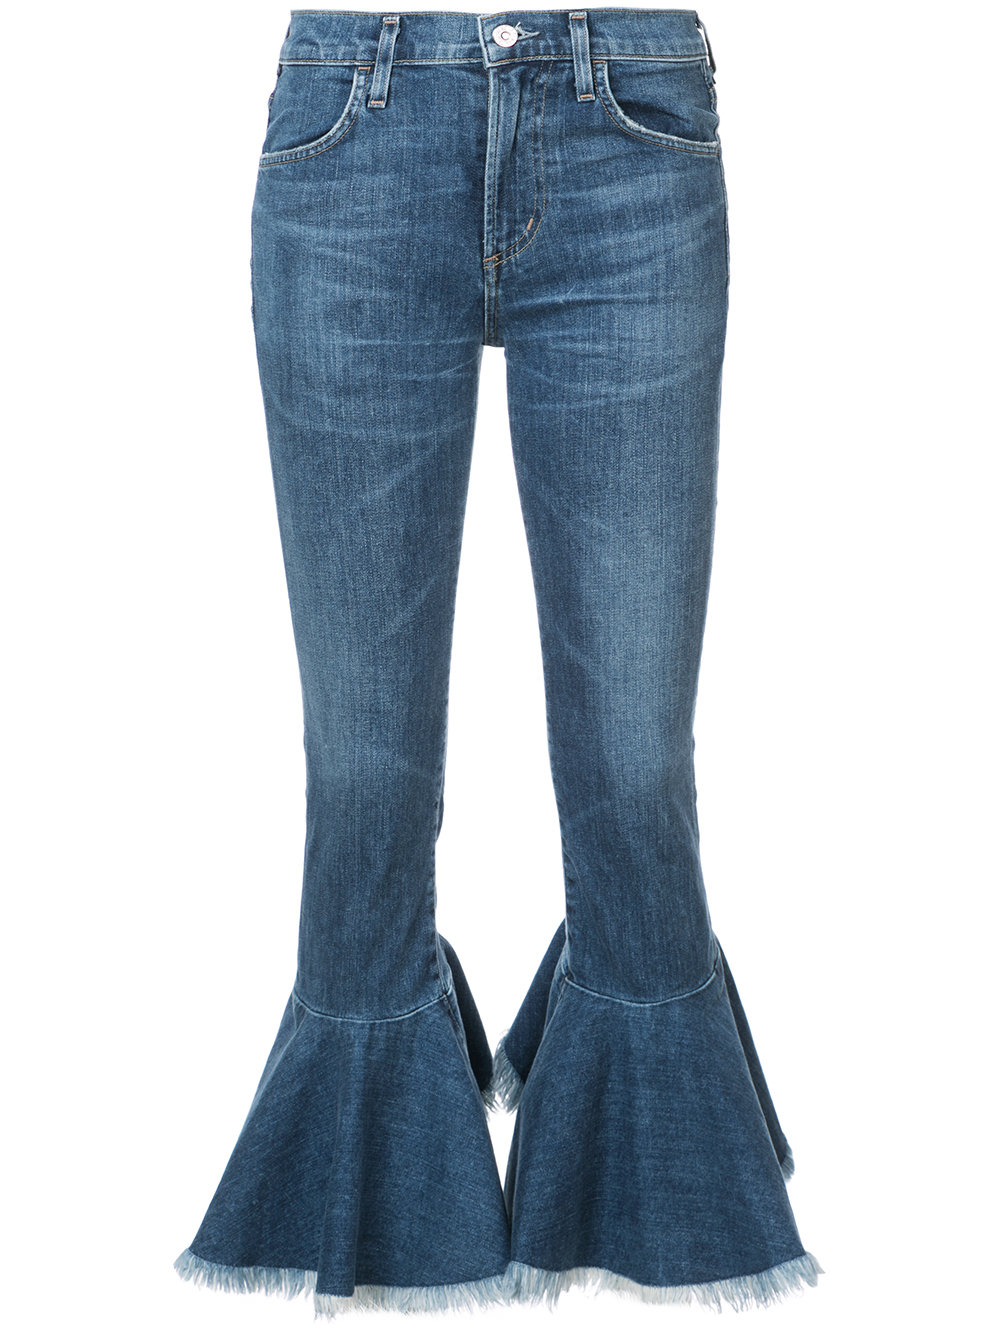 CITIZENS OF HUMANITY jeans $260